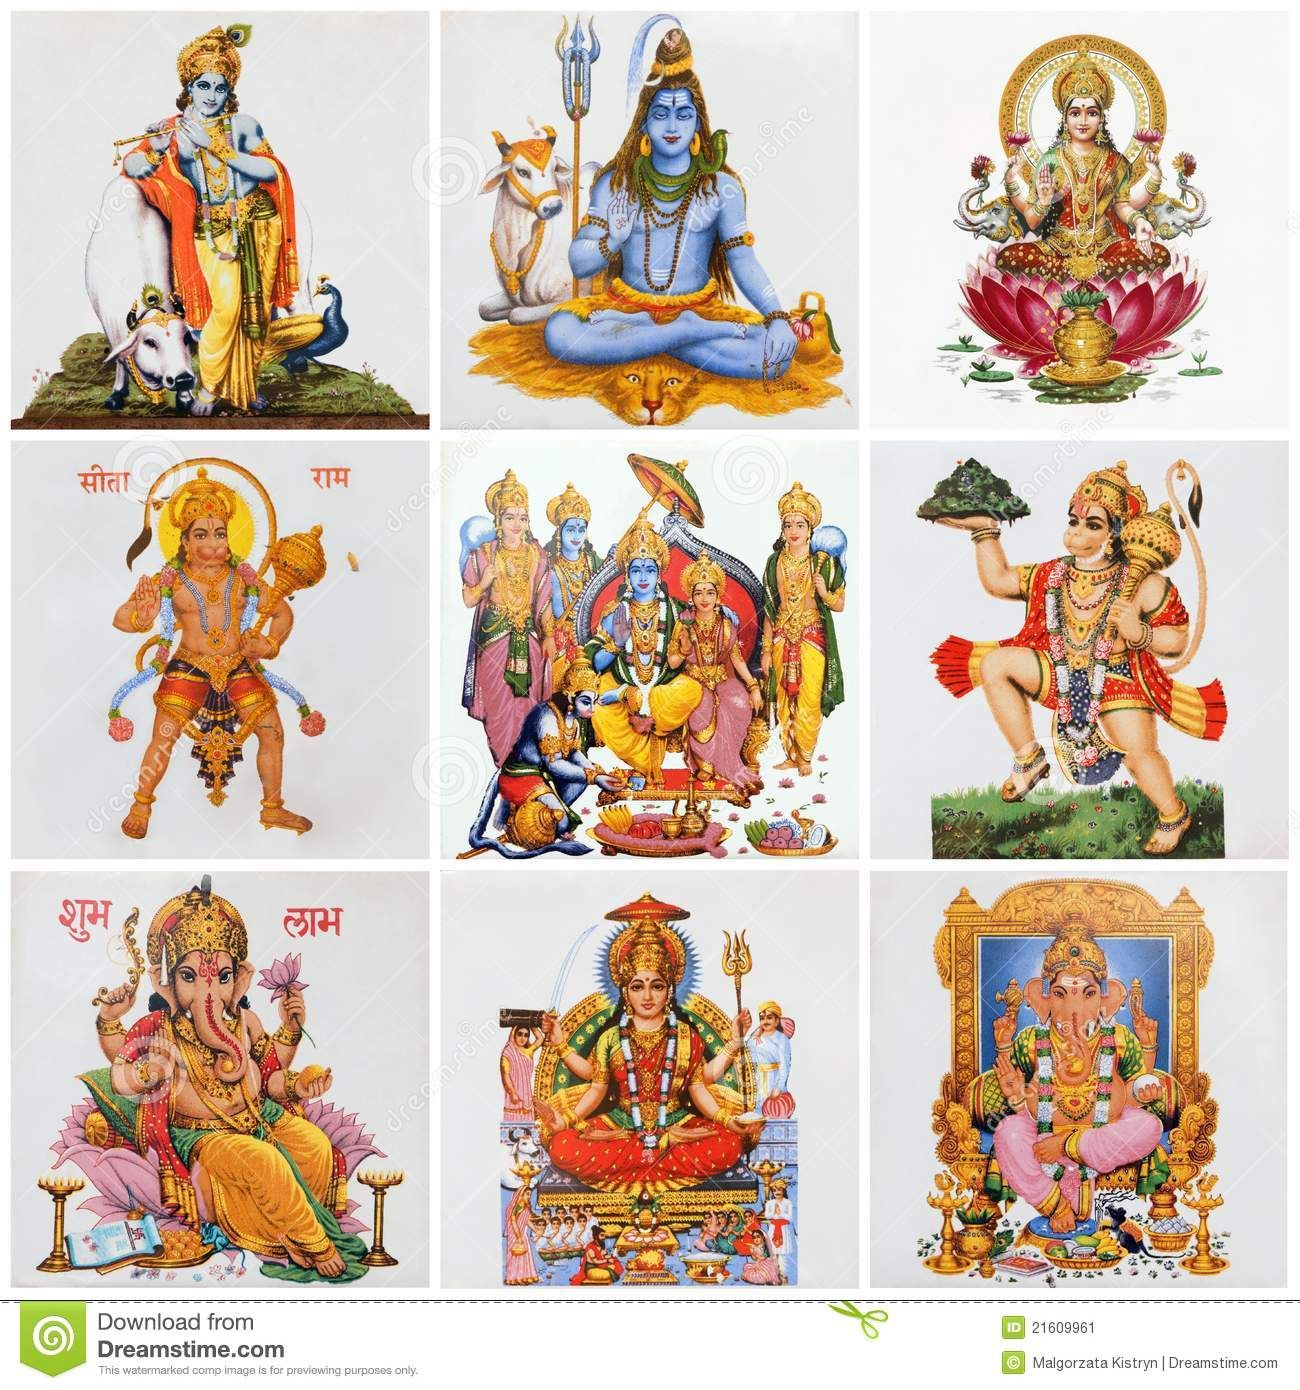 Dioses de la india yahoo image search results hinduism various forms avatars of hindu gods and goddesses indian temples mythology hindu monks saints and thier philosophies scriptures written by rishis buycottarizona